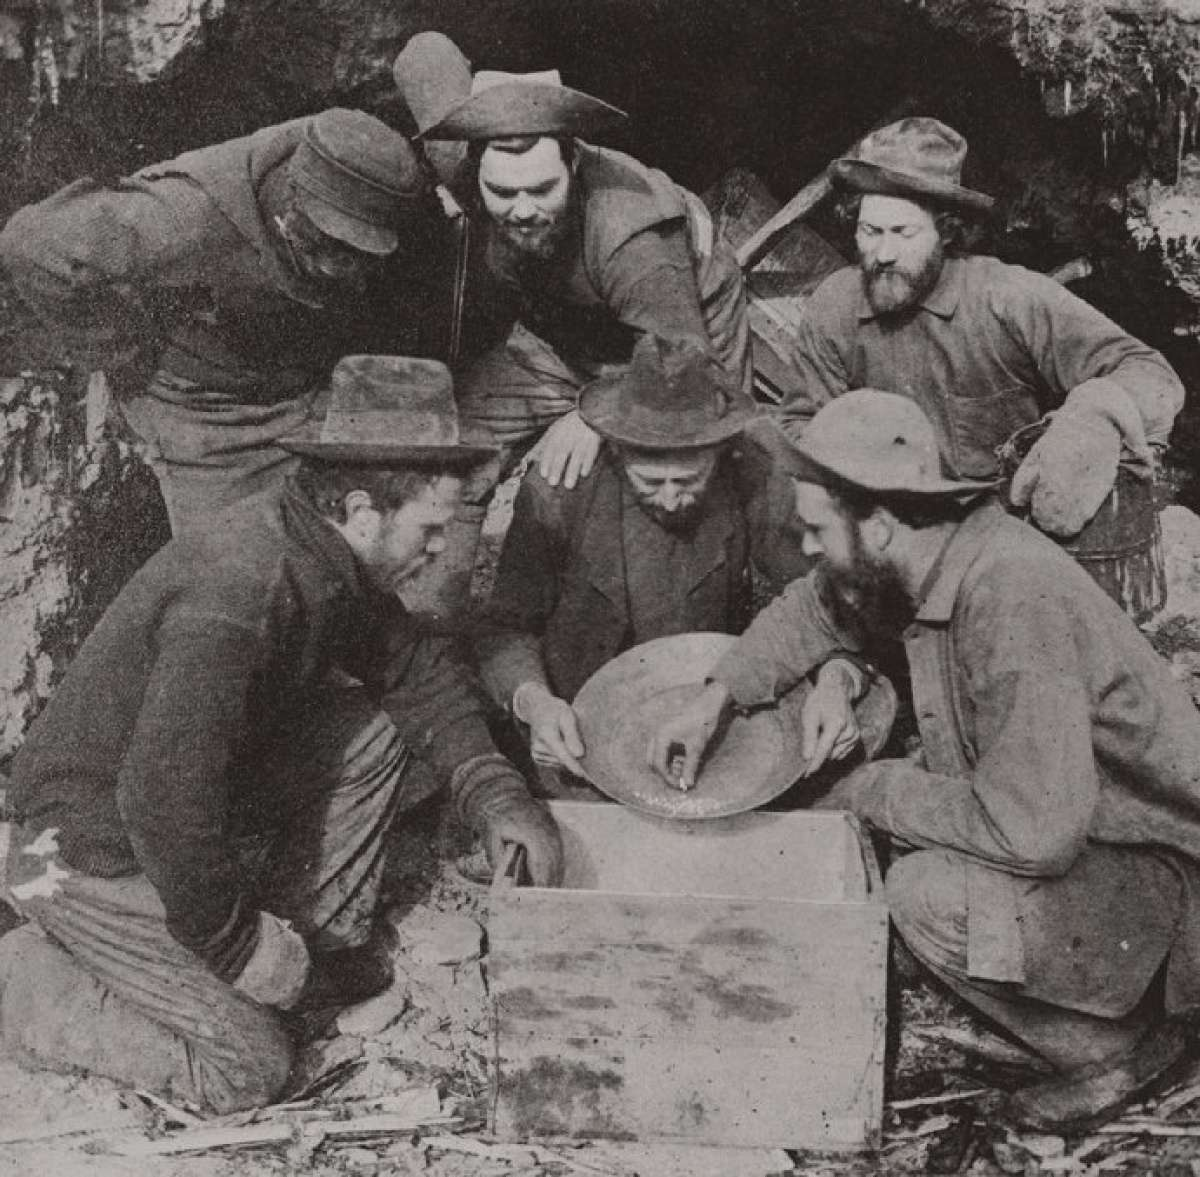 Miners in the Klondike Gold Rush